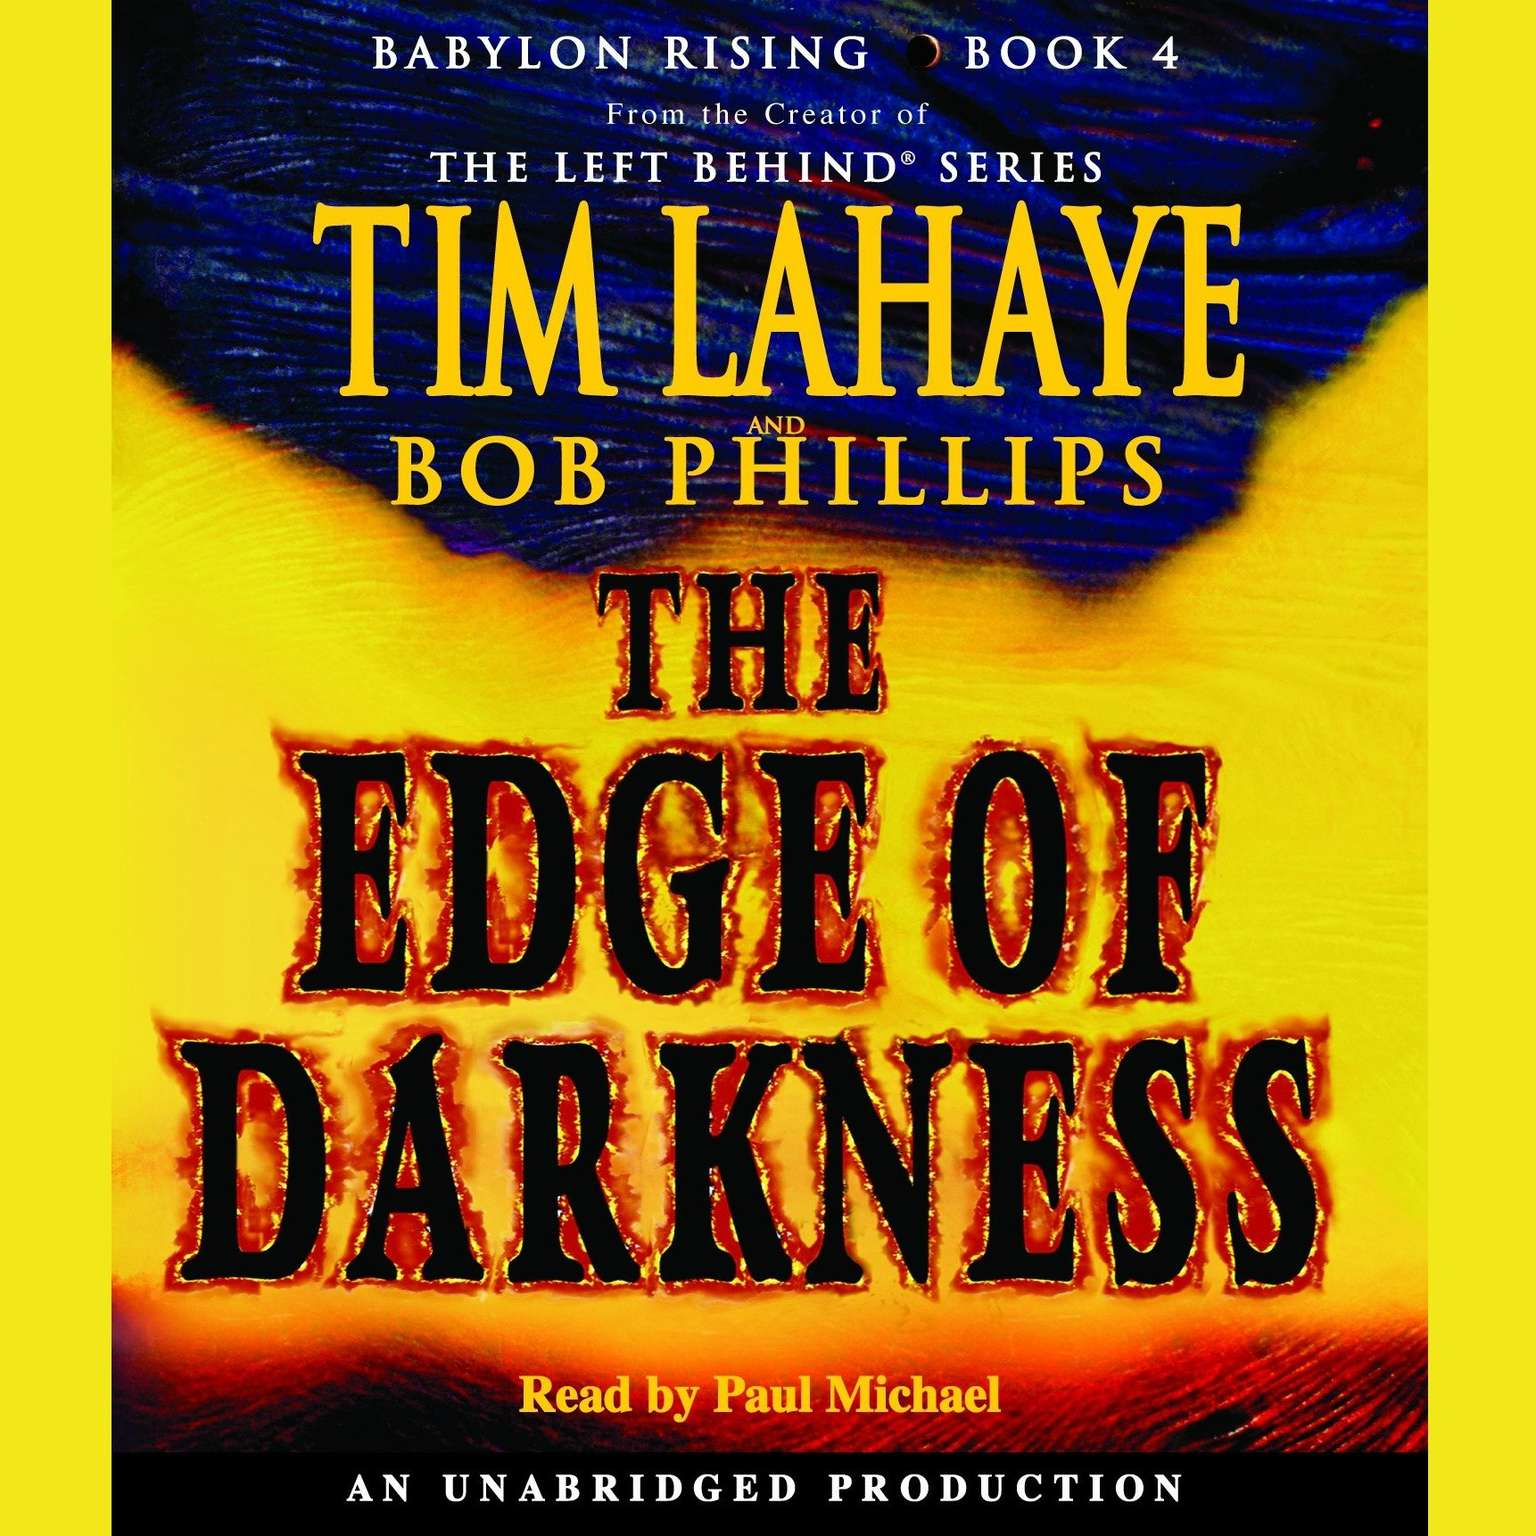 Printable Babylon Rising: The Edge of Darkness Audiobook Cover Art